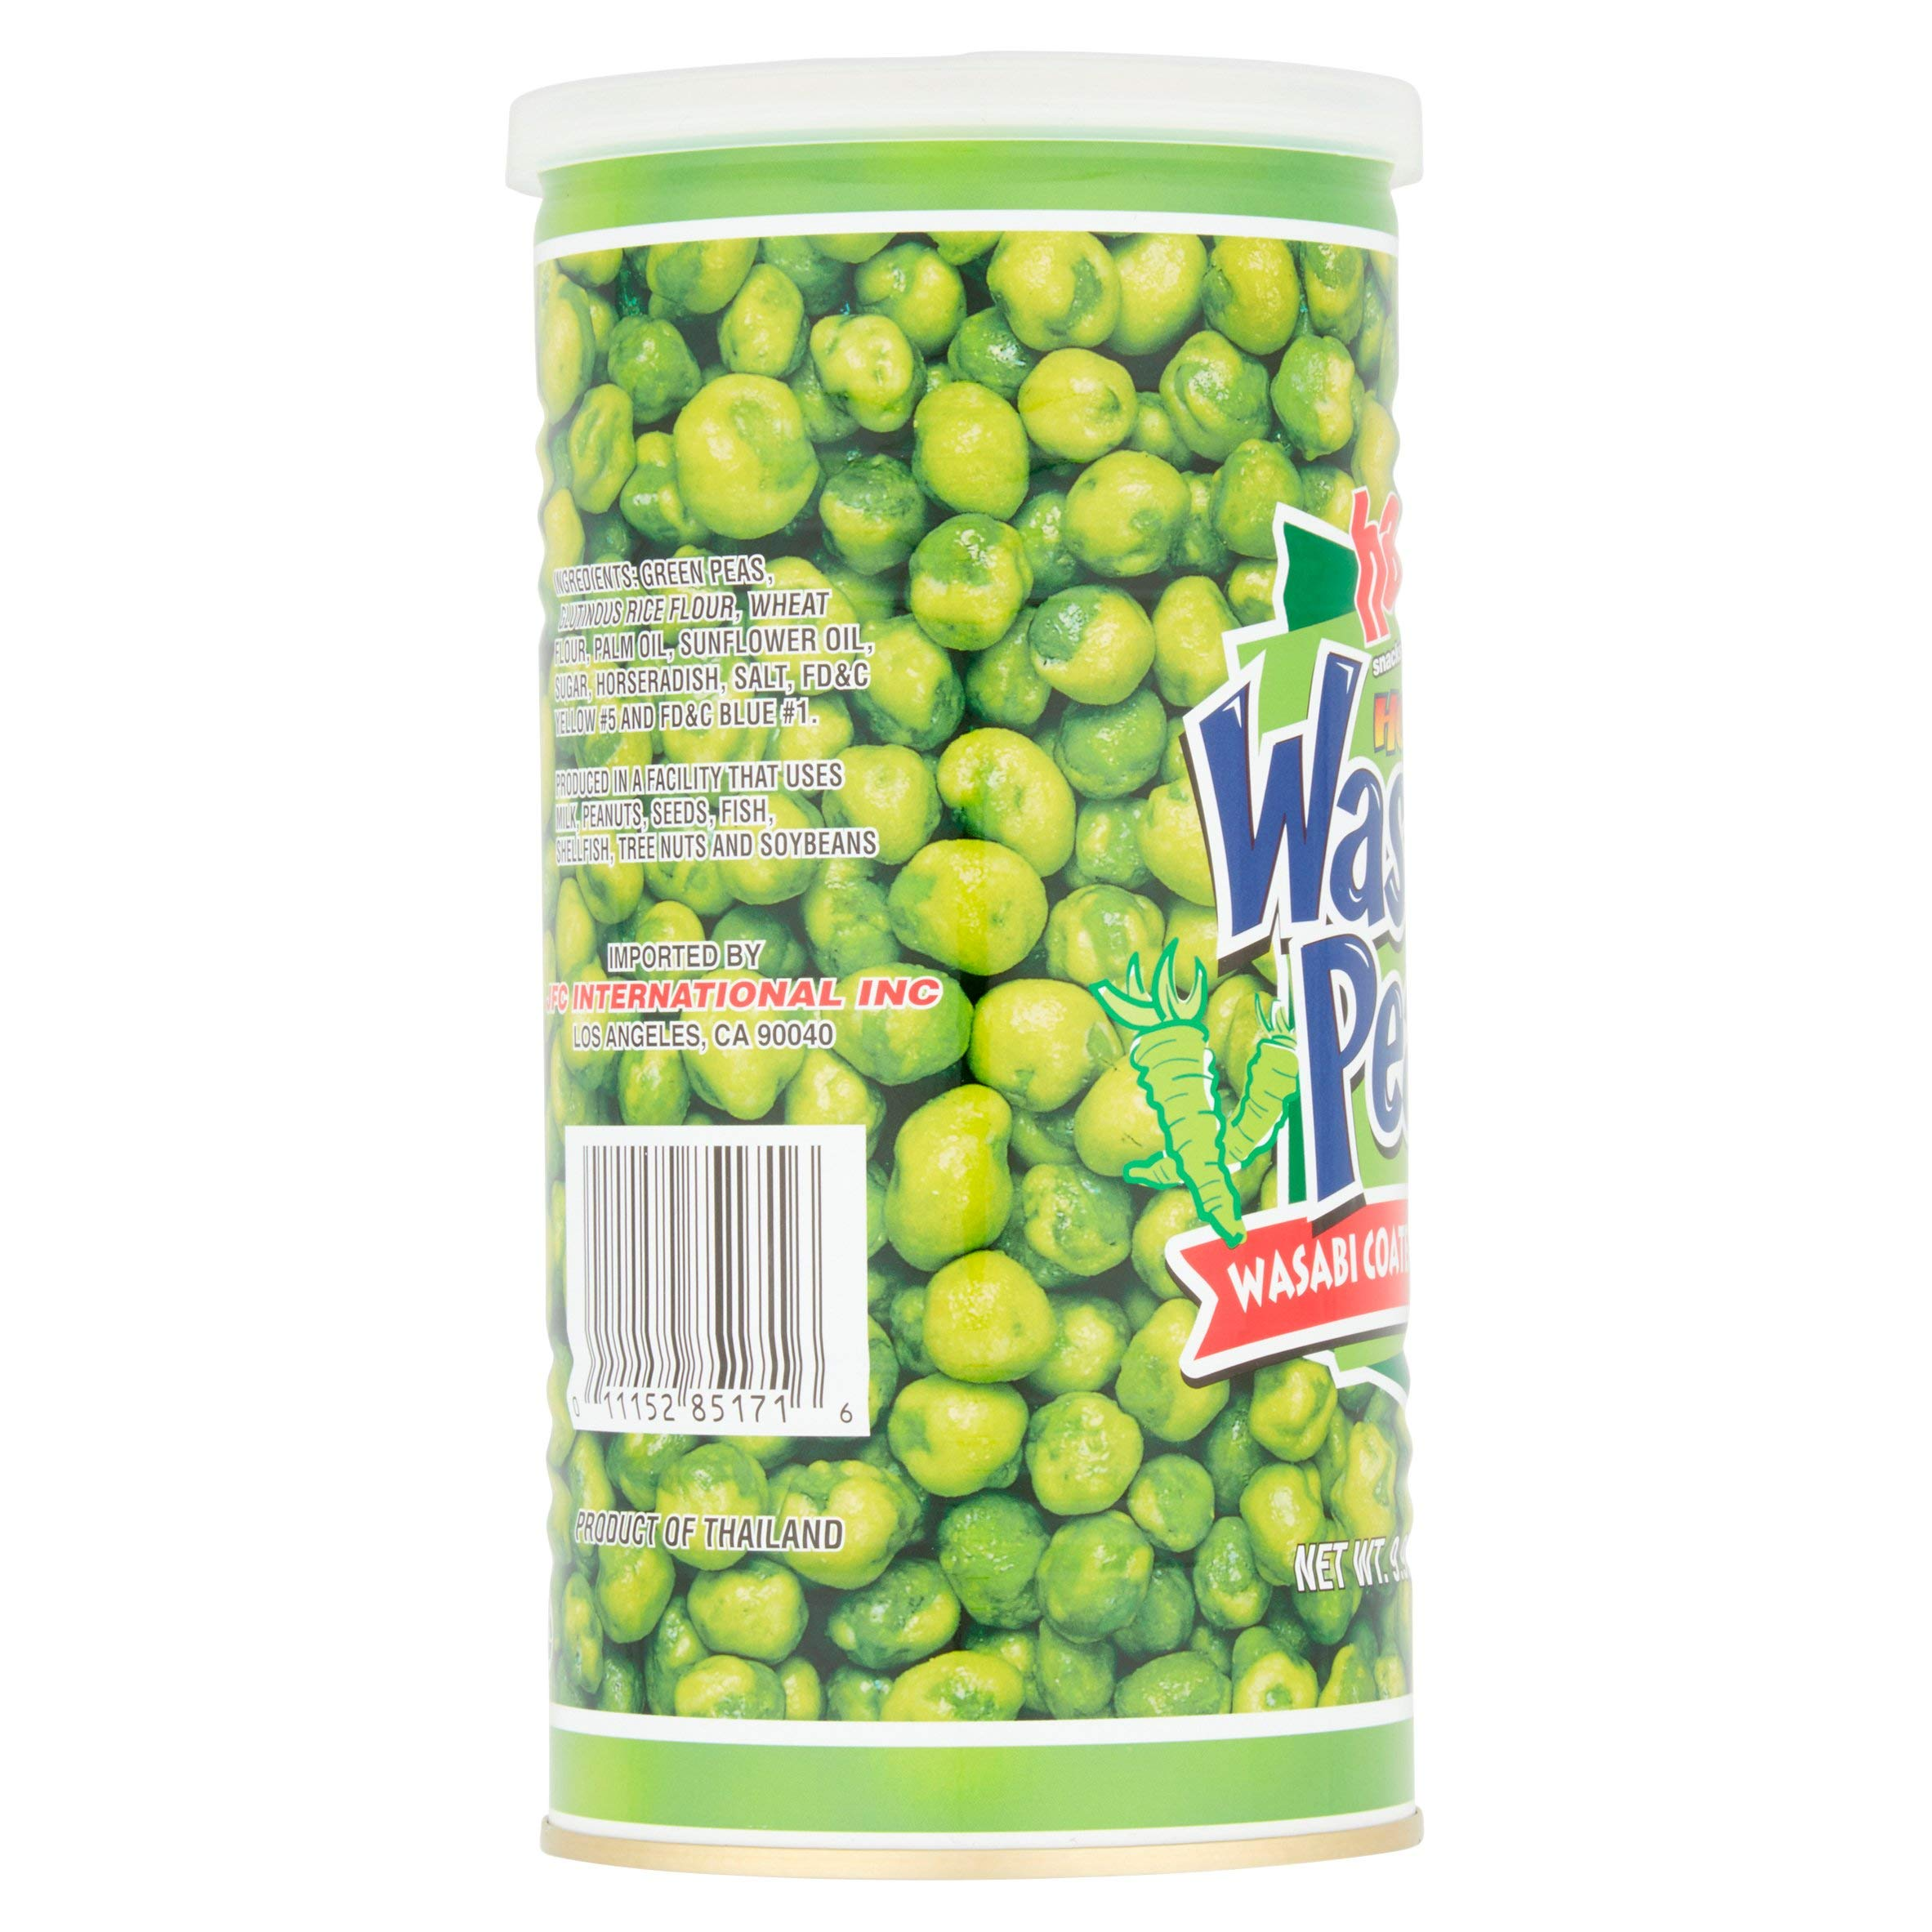 Hapi Snacks Hot Wasabi Peas 9.90oz - 3 Pack by HAPI (Image #3)